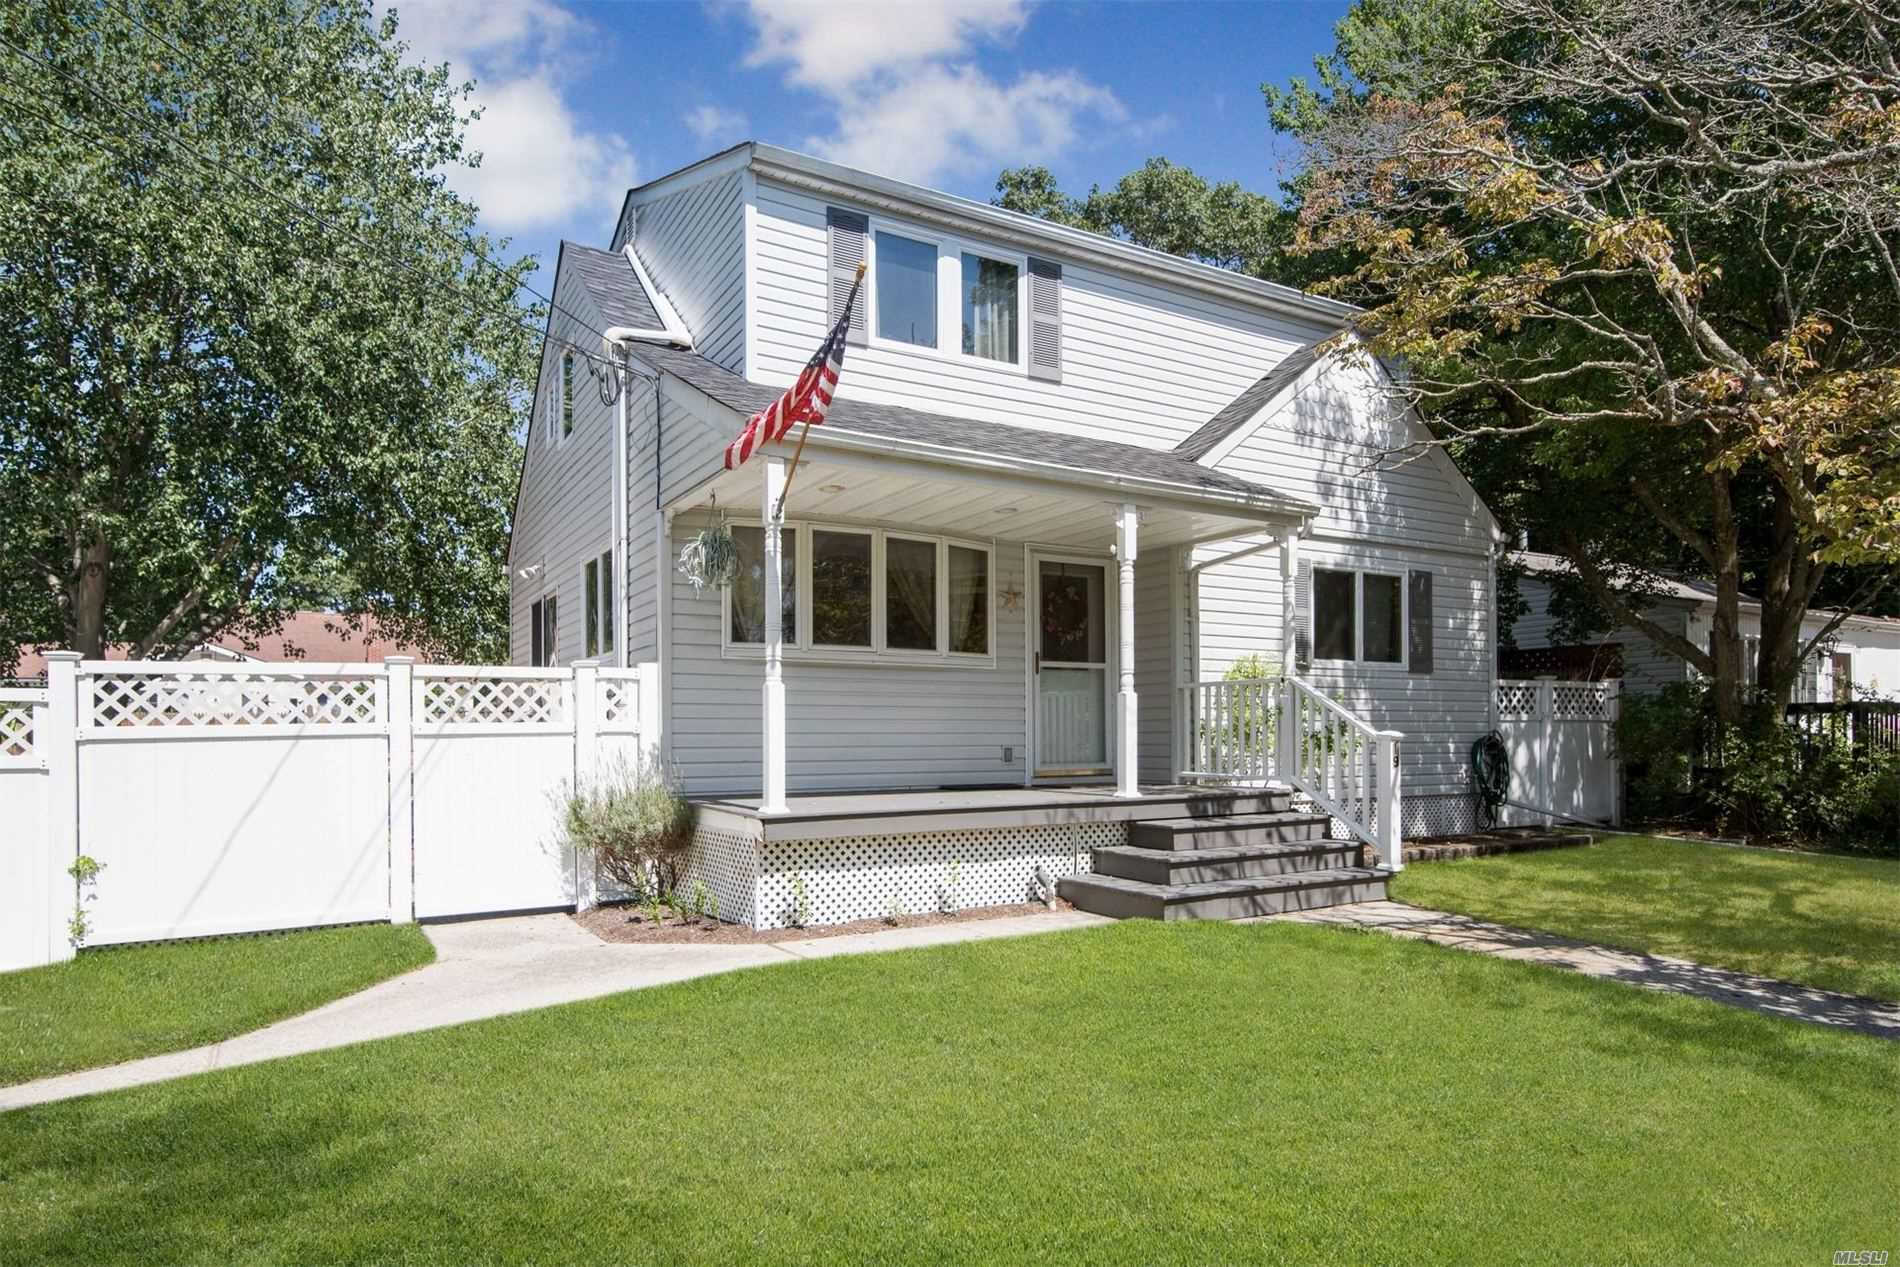 Another Property Sold - 19 Celia St, E. Patchogue, NY 11772